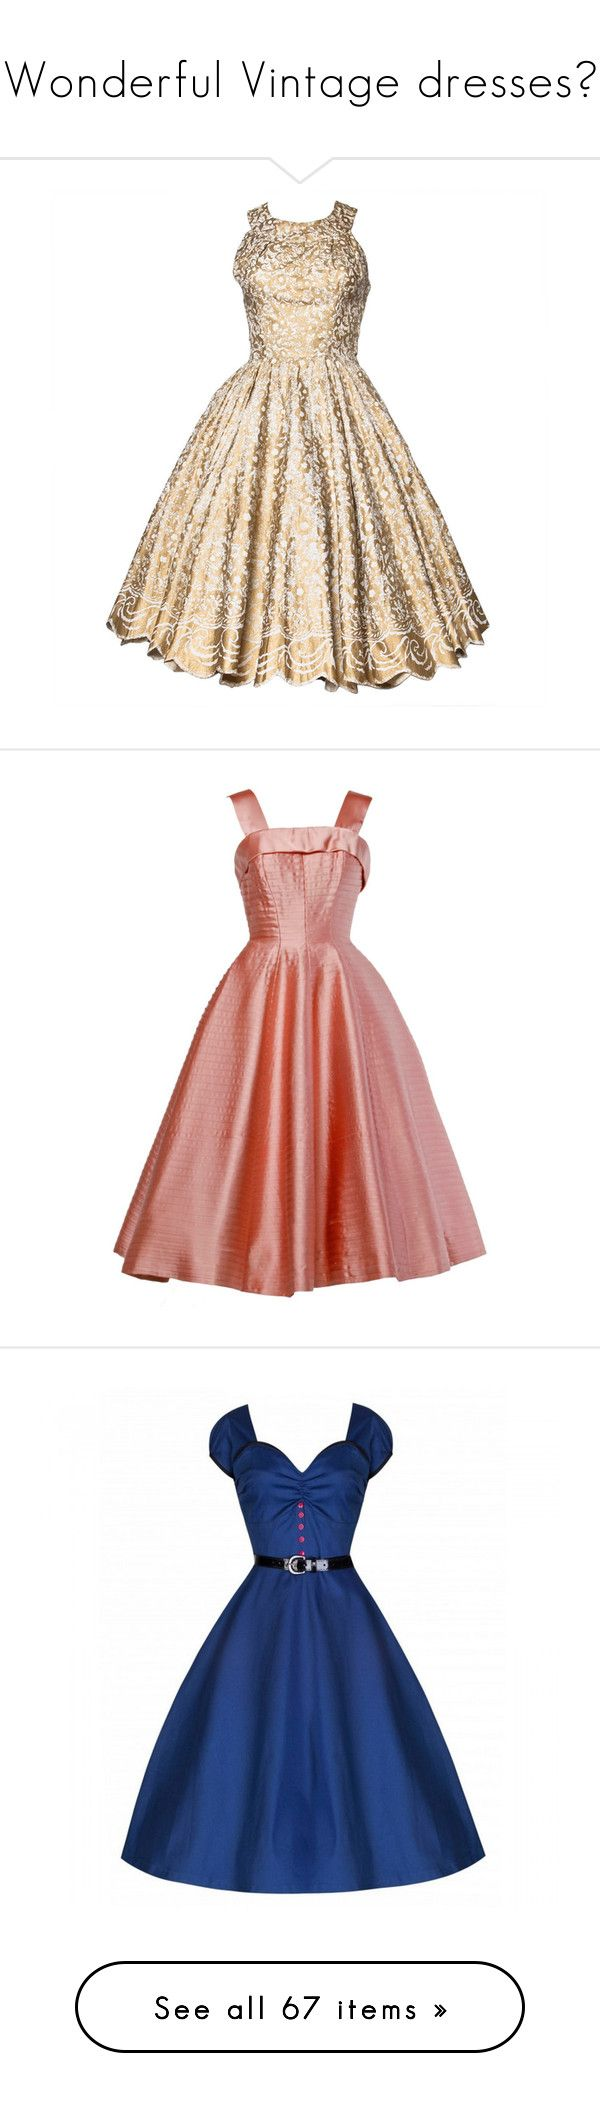 """""""Wonderful Vintage dresses♥"""" by renete ❤ liked on Polyvore featuring dresses, 1950s, day dresses, vintage cocktail dresses, fit and flare dress, white cocktail dresses, metallic gold dress, white scalloped dress, short dresses and pink"""